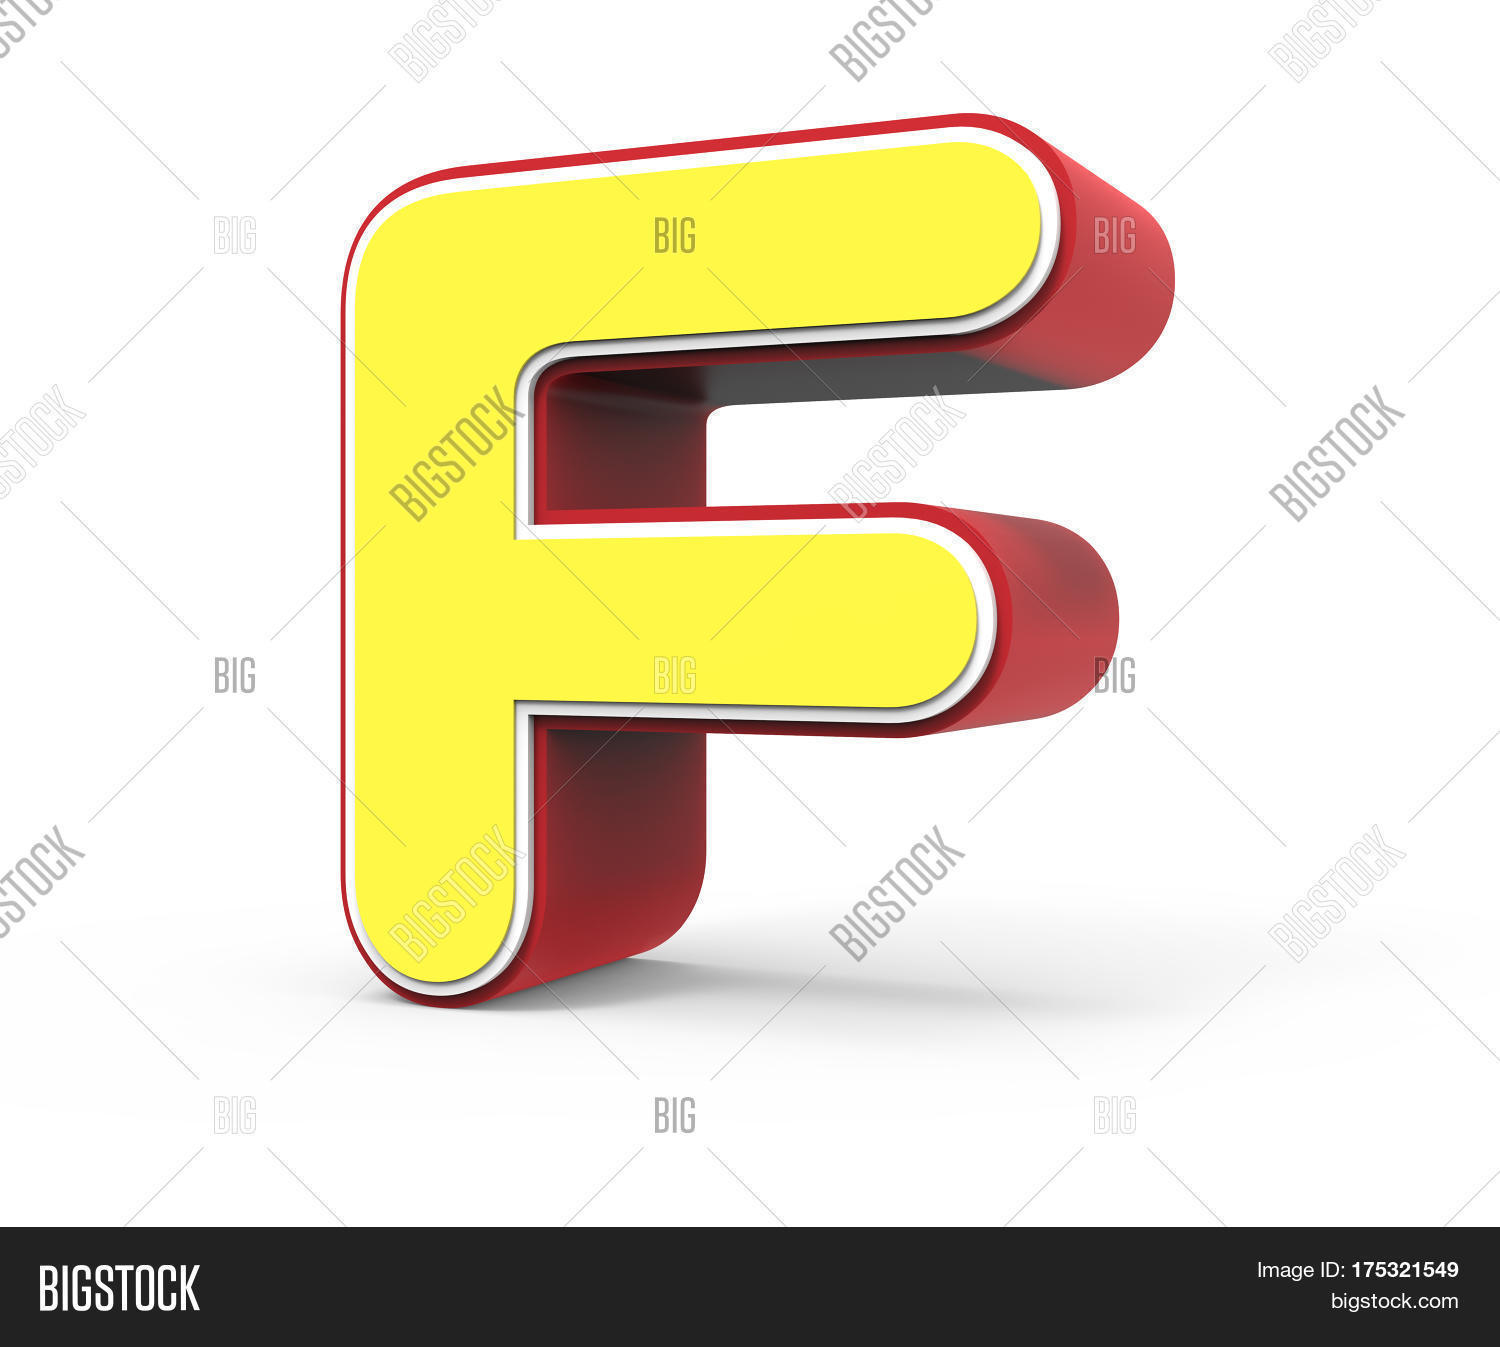 Yellow Letter F Image & Photo | Bigstock